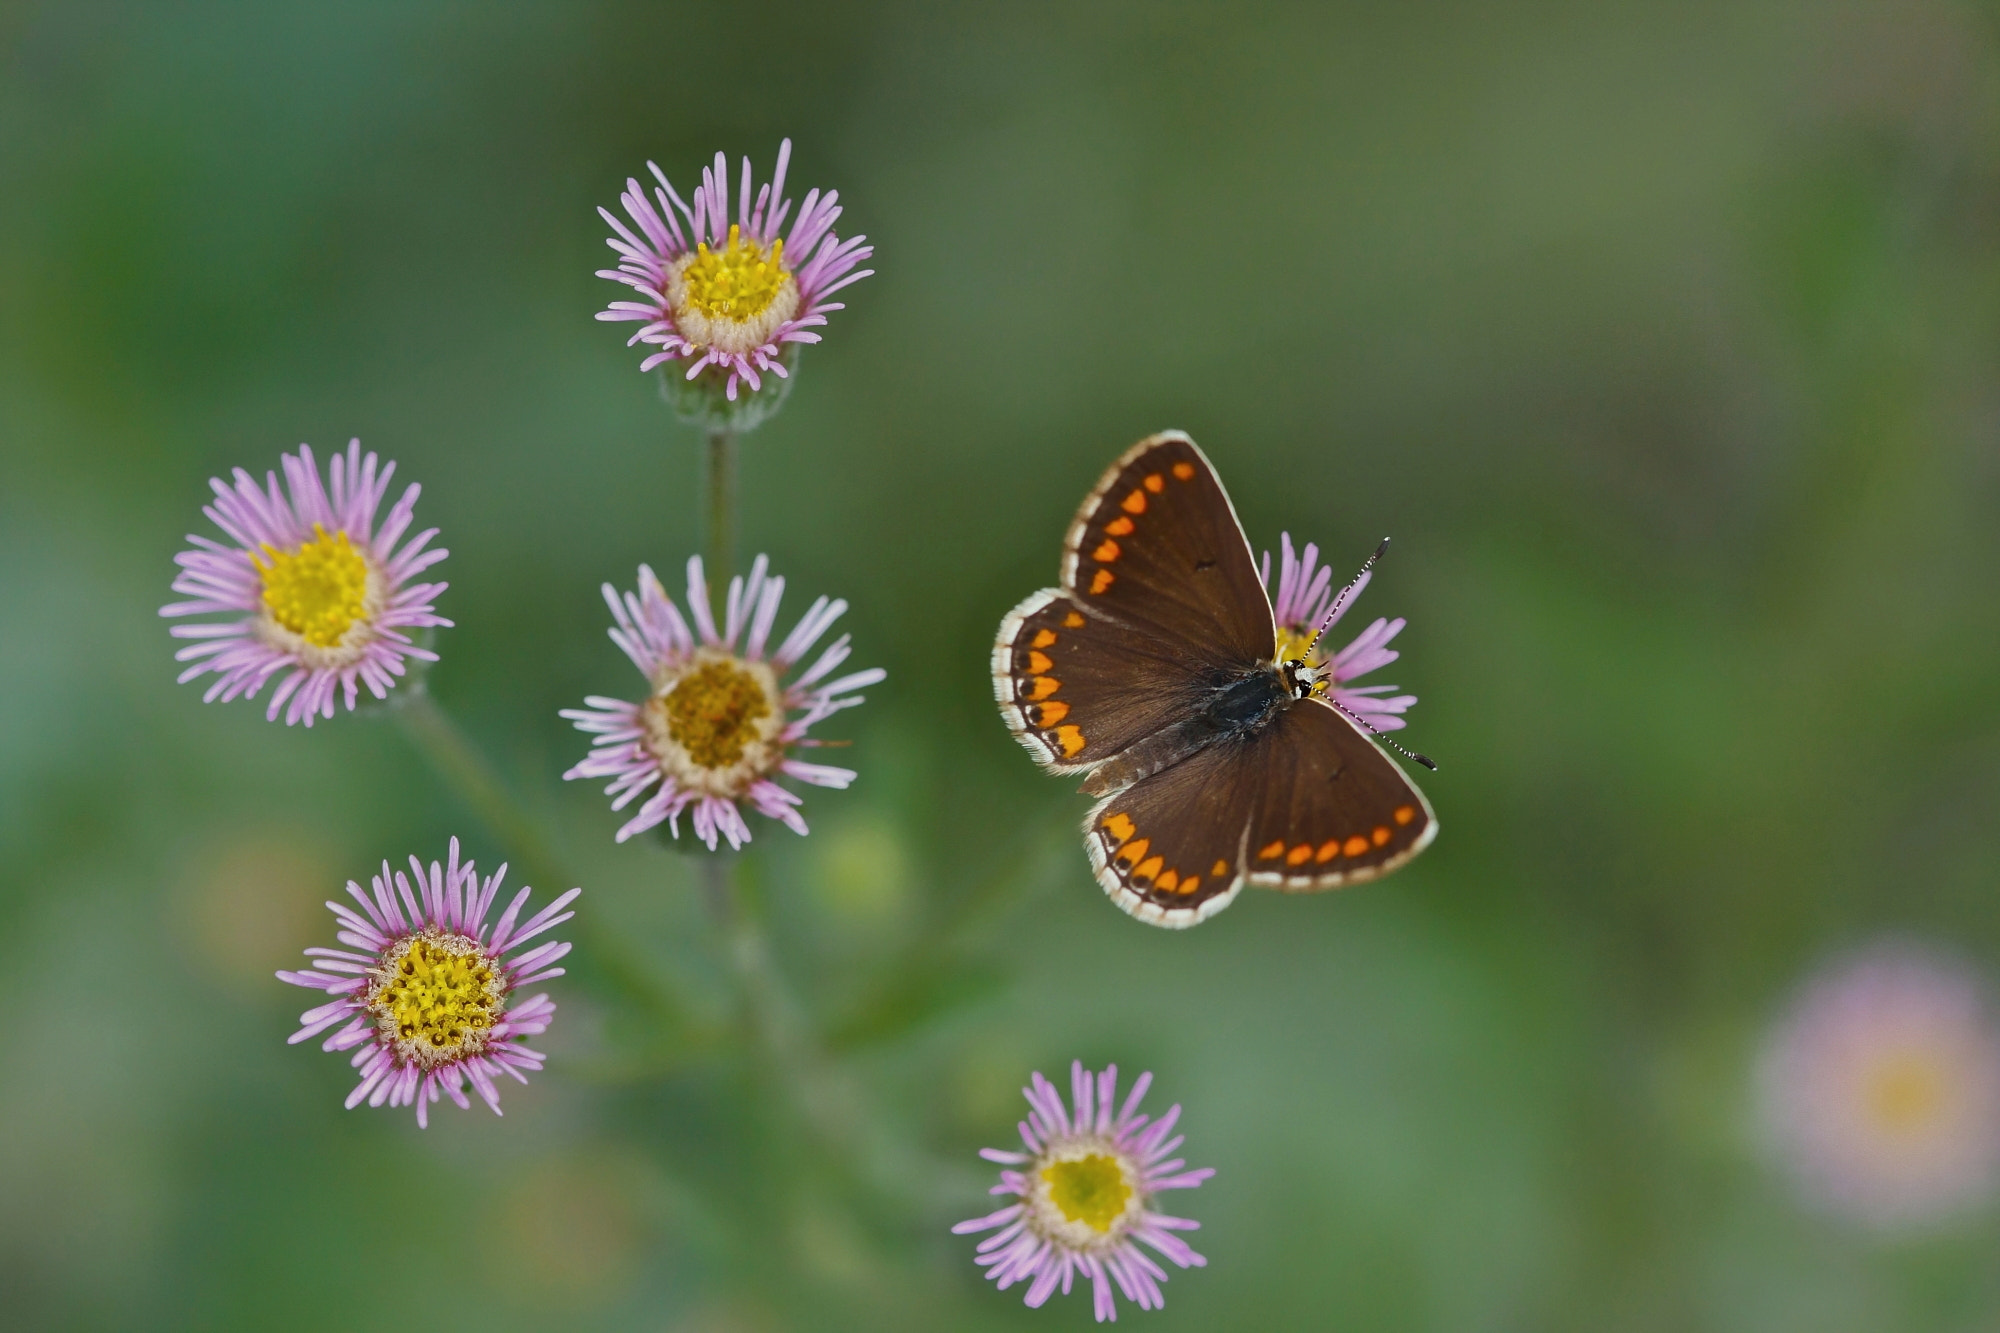 Photograph aricia agestis by Cafer Gezer on 500px